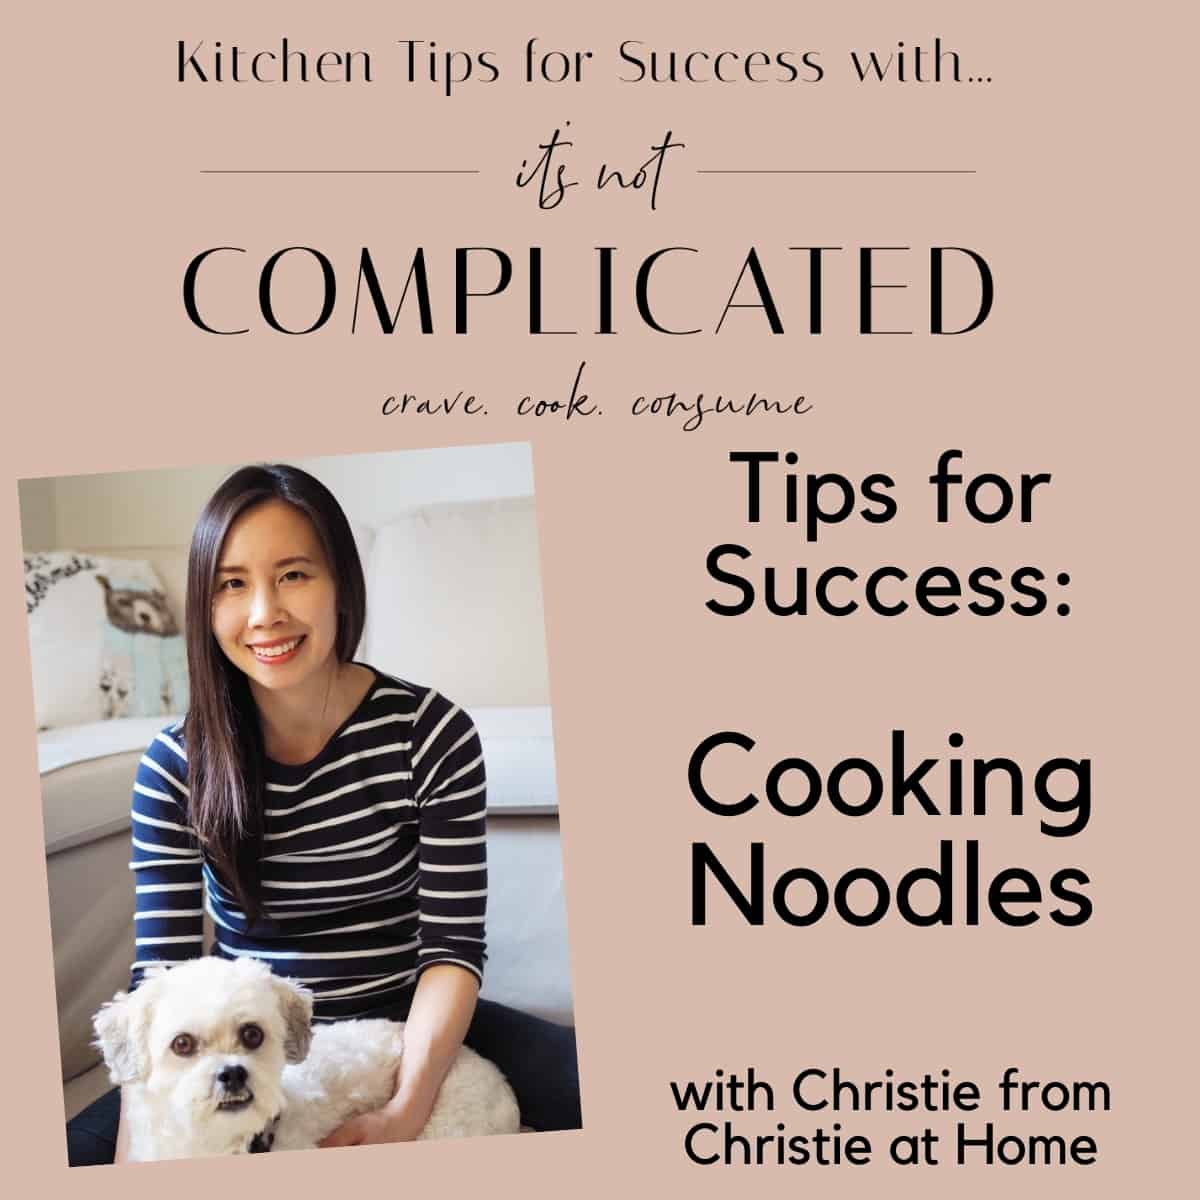 Poster for Cooking Noodles Tips for Success with Christie.